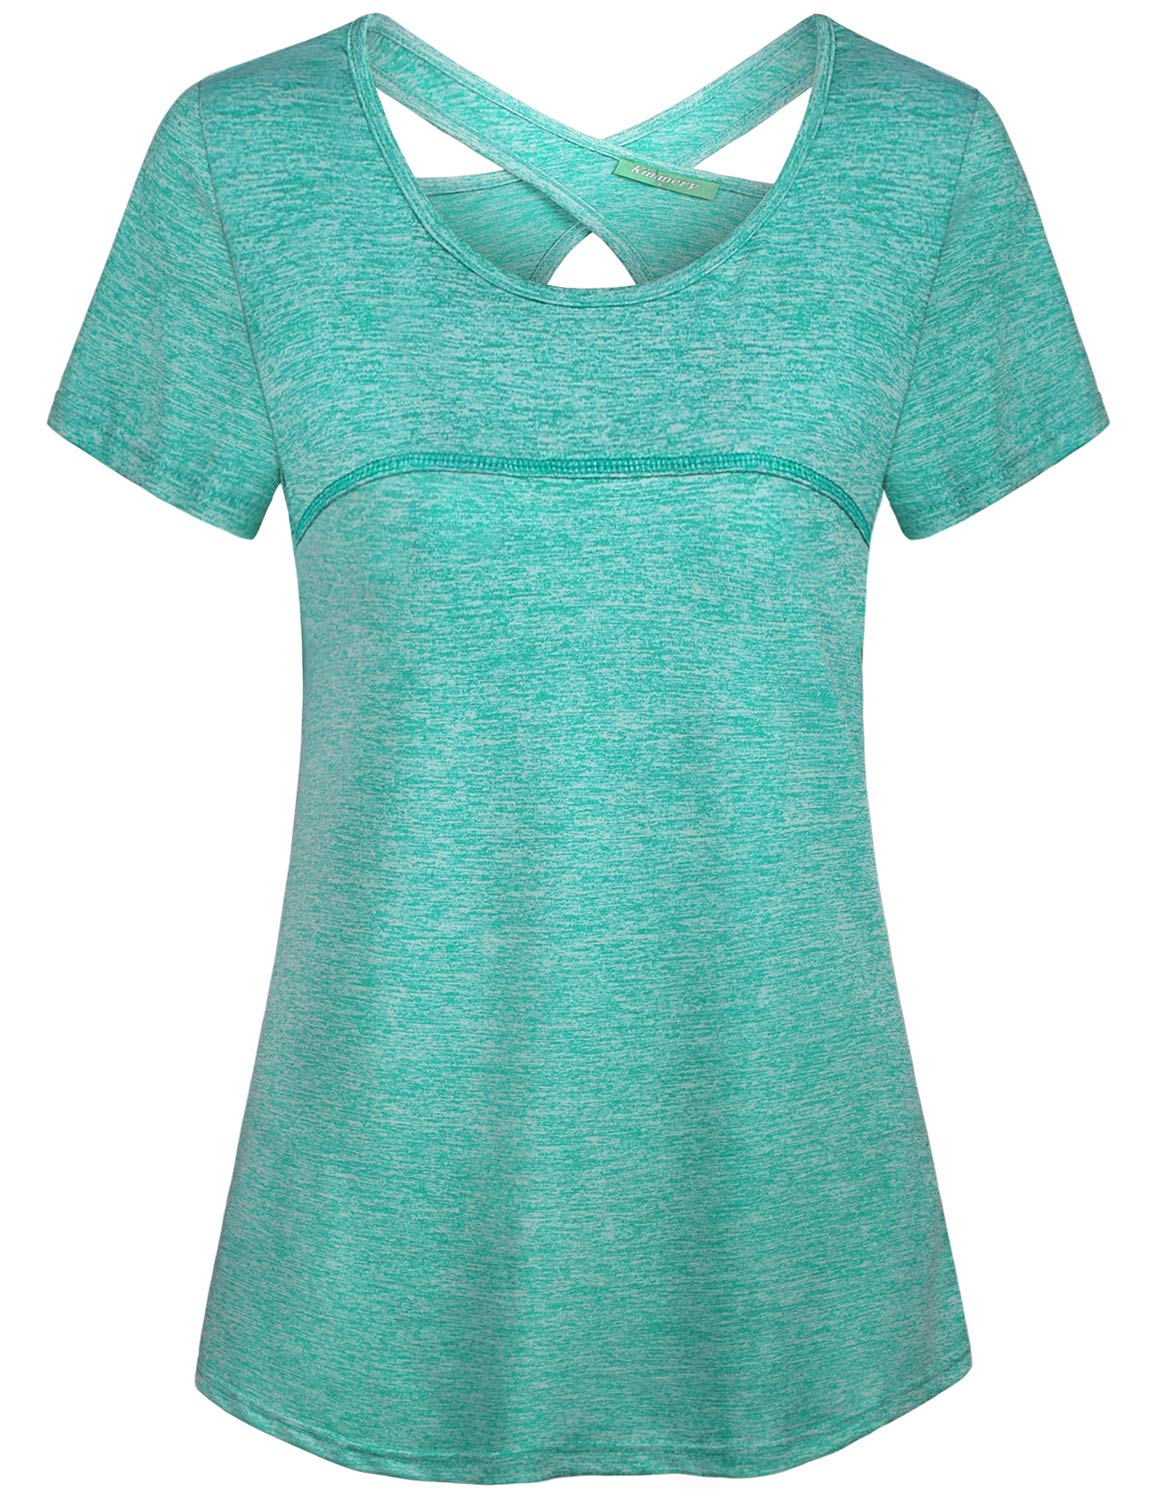 Kimmery Yoga Tunic, Woman Flattering Fit Novelty Cutout Tshirts Short Sleeve Classic Round Neck Regular Shirt Heathered Jersey Casual Top Comfy Cooling for Exercise Zumba Class Green XXL by connche